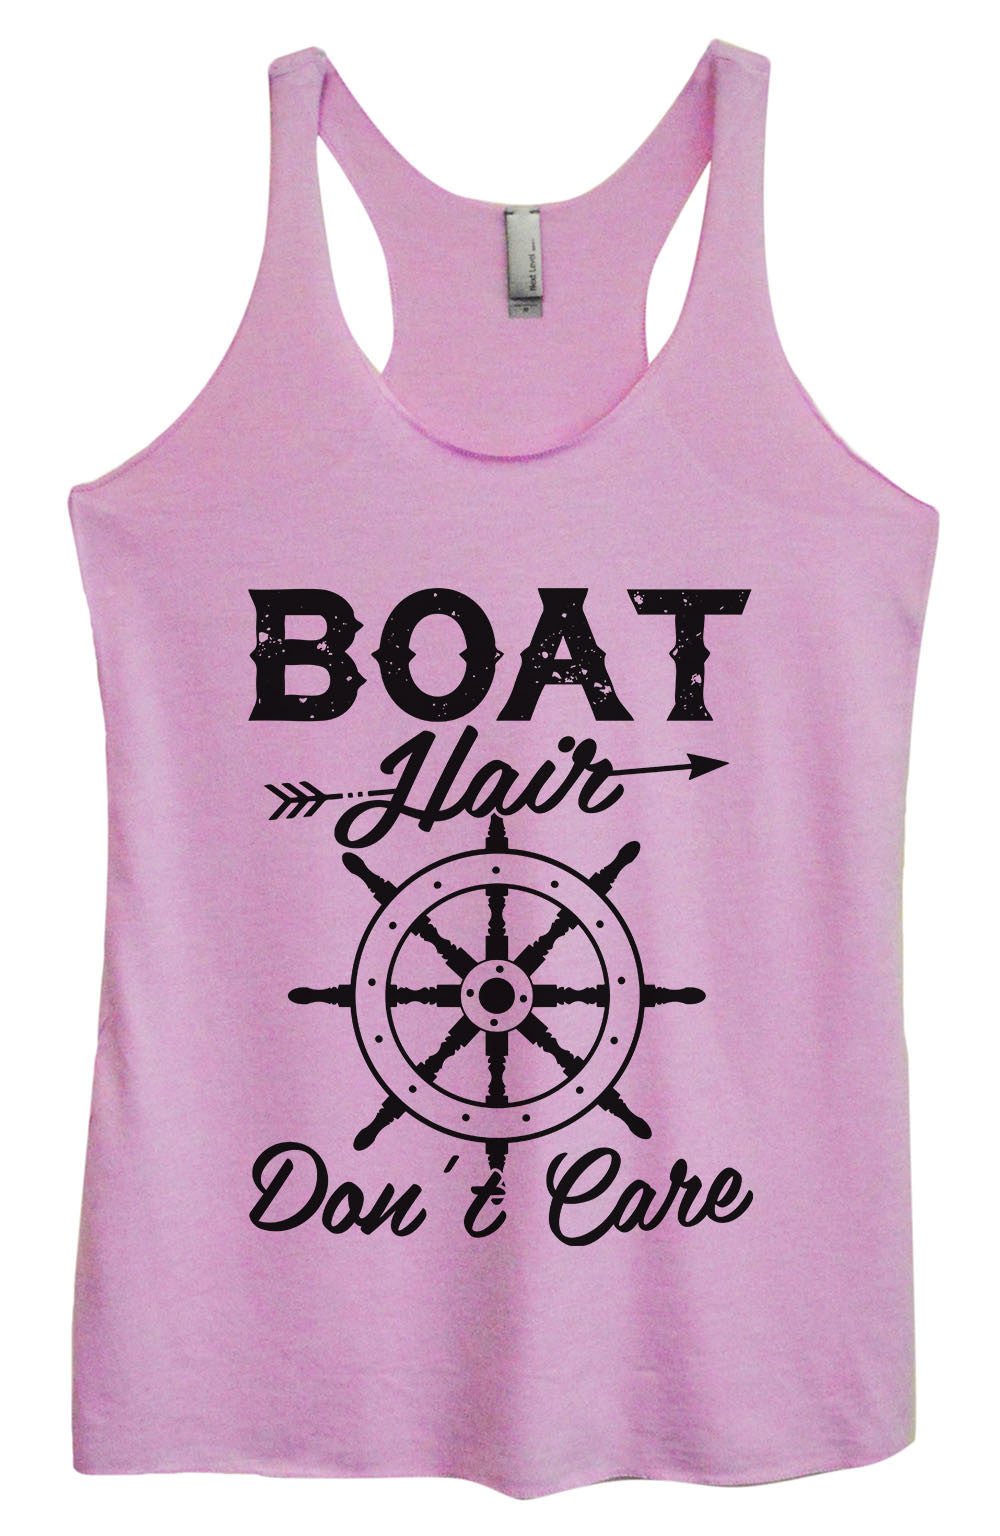 Womens Fashion Triblend Tank Top - Boat Hair Don't Care - Tri-1441 - Funny Shirts Tank Tops Burnouts and Triblends  - 3